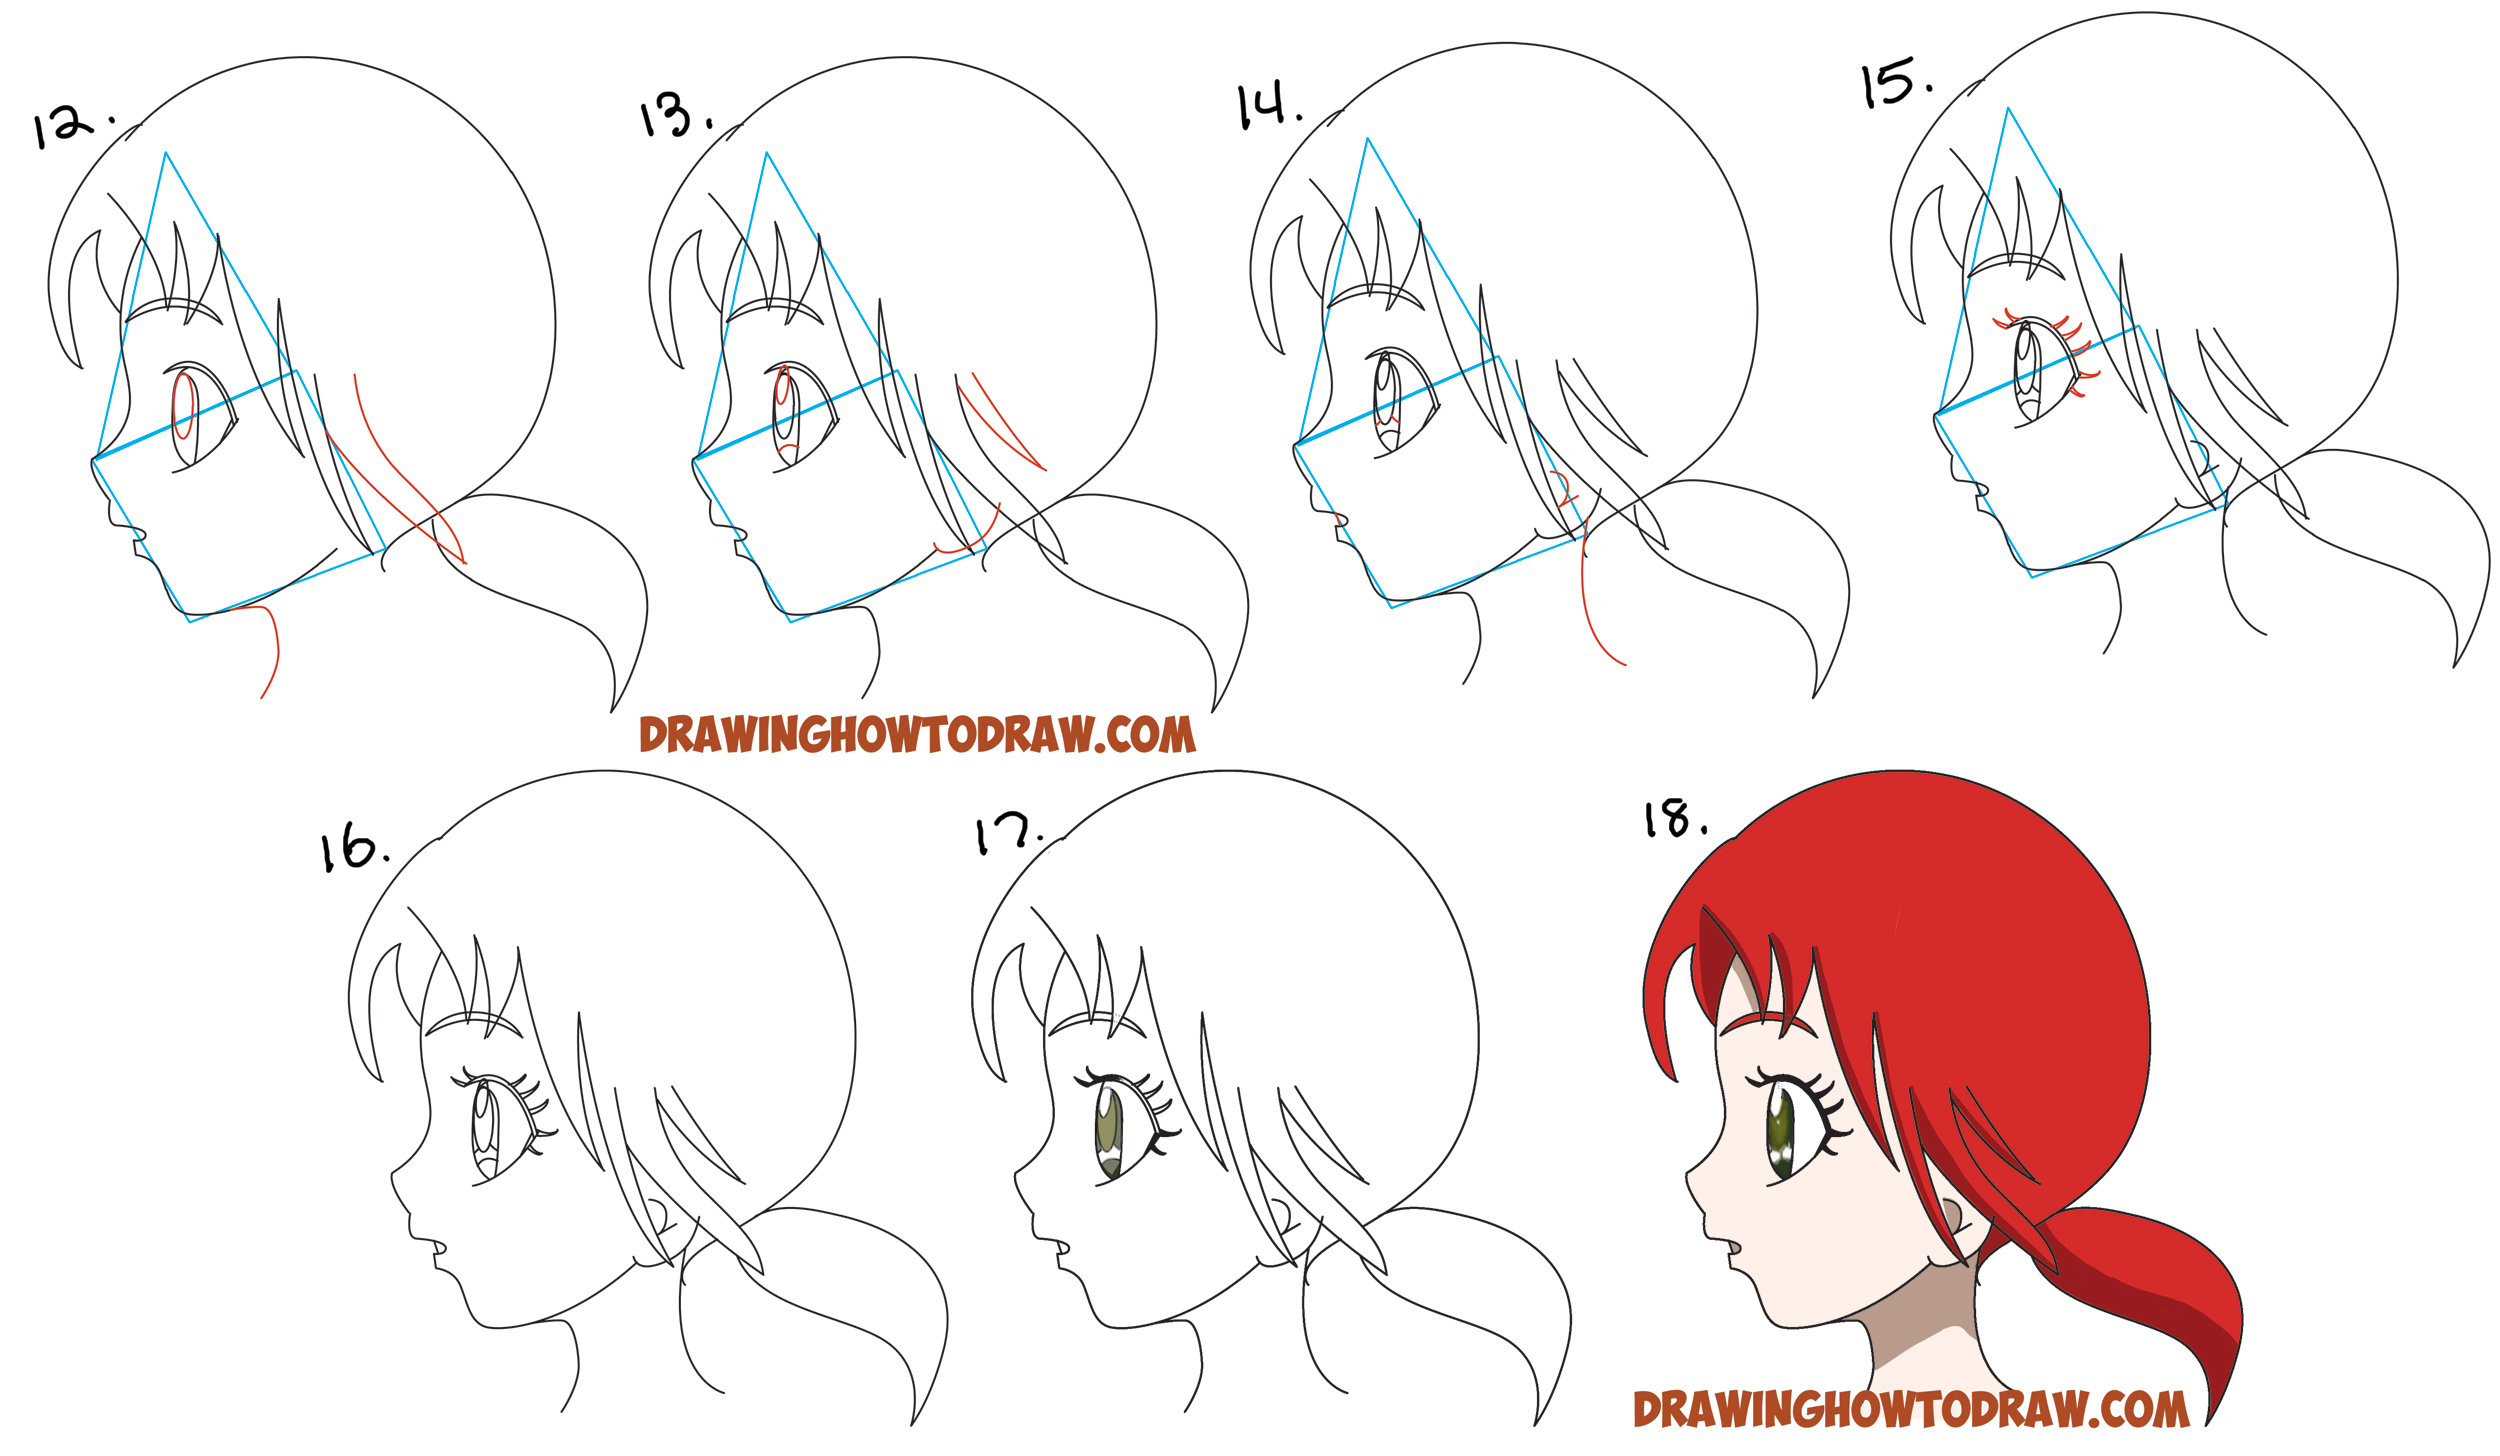 Learn how to draw an anime manga girls face and eyes from the side in